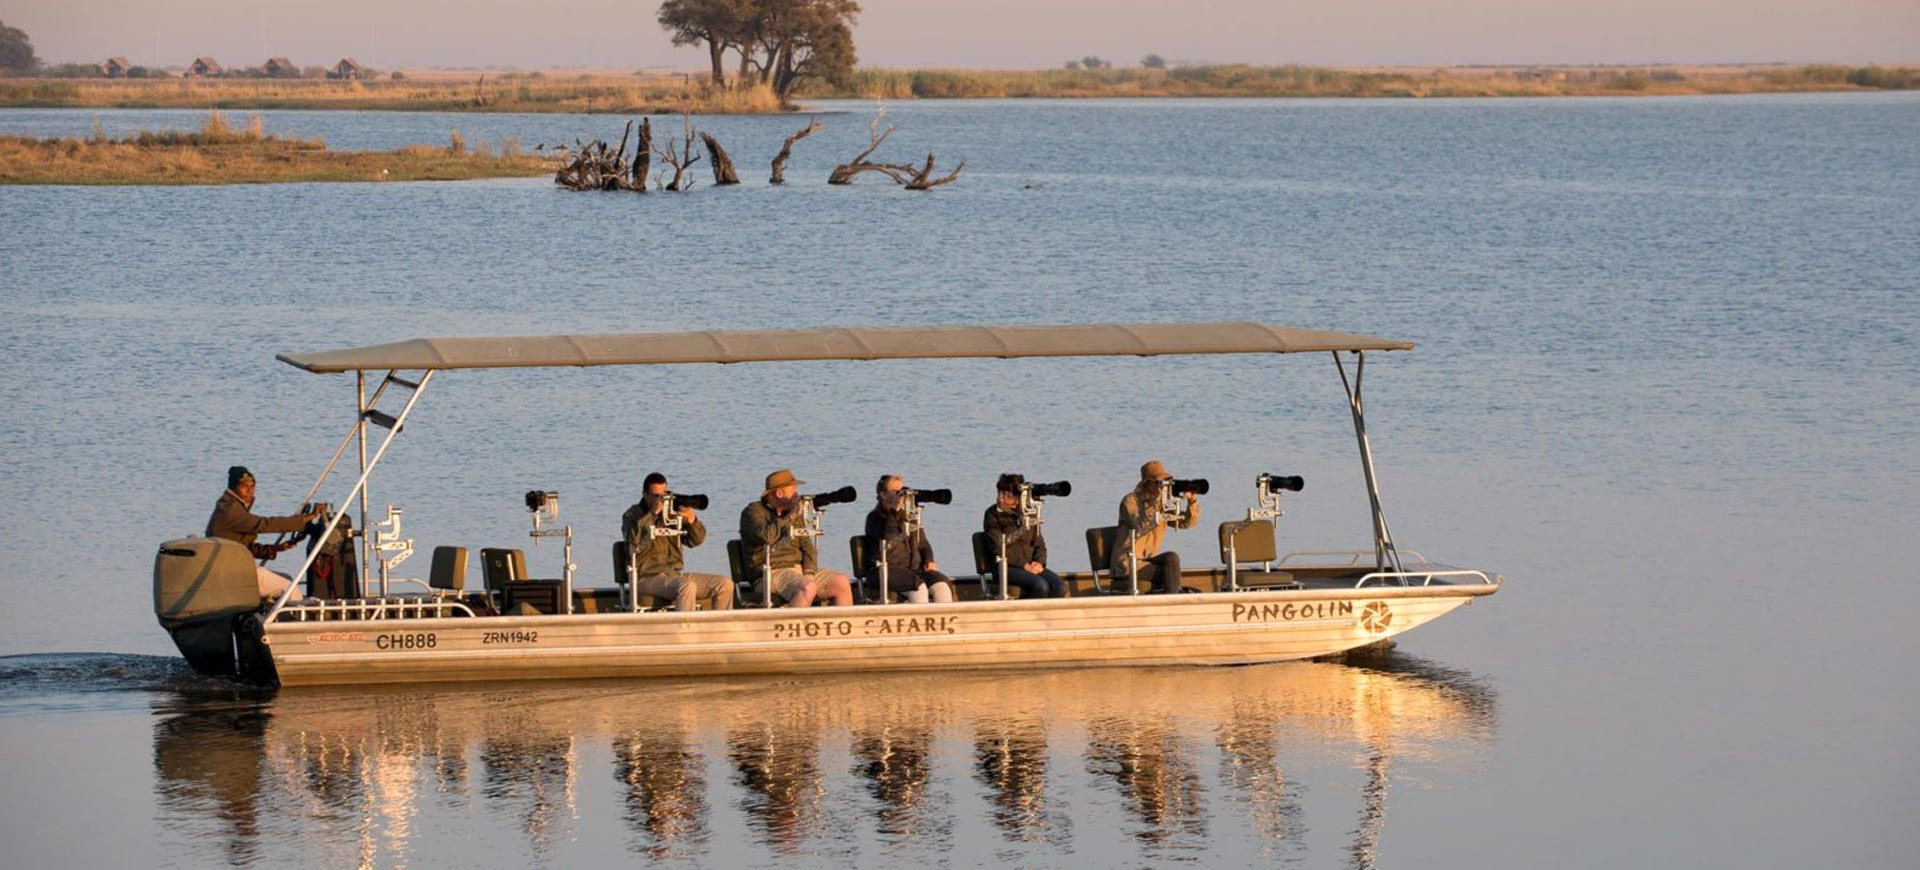 Chobe River Photographic Safari